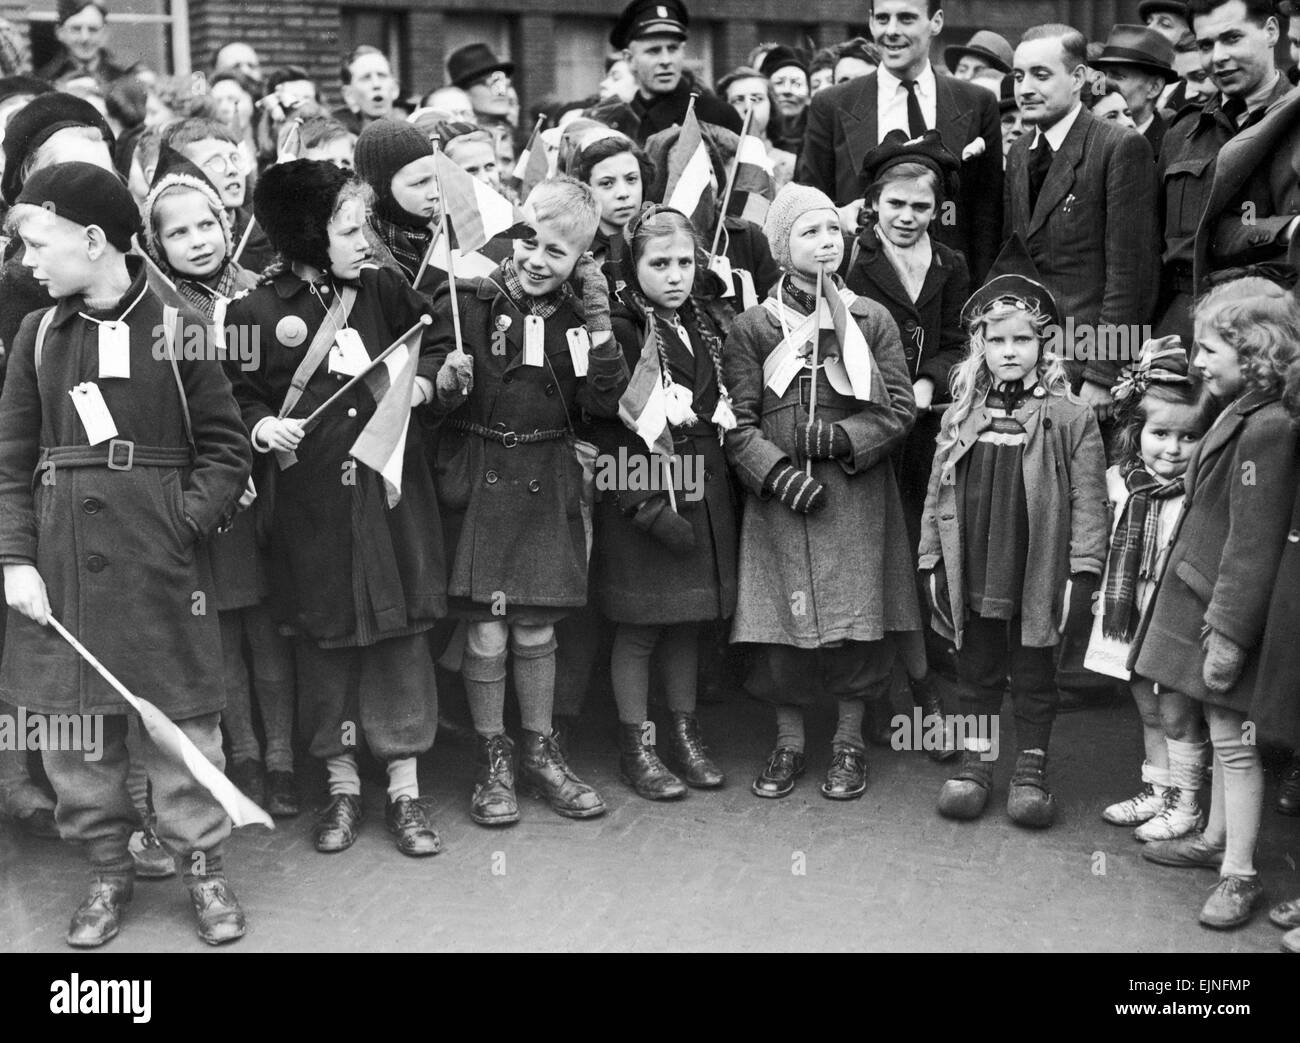 Dutch children being evacuated to Coventry due to lack of food, ready to go after being labelled and given flags Stock Photo